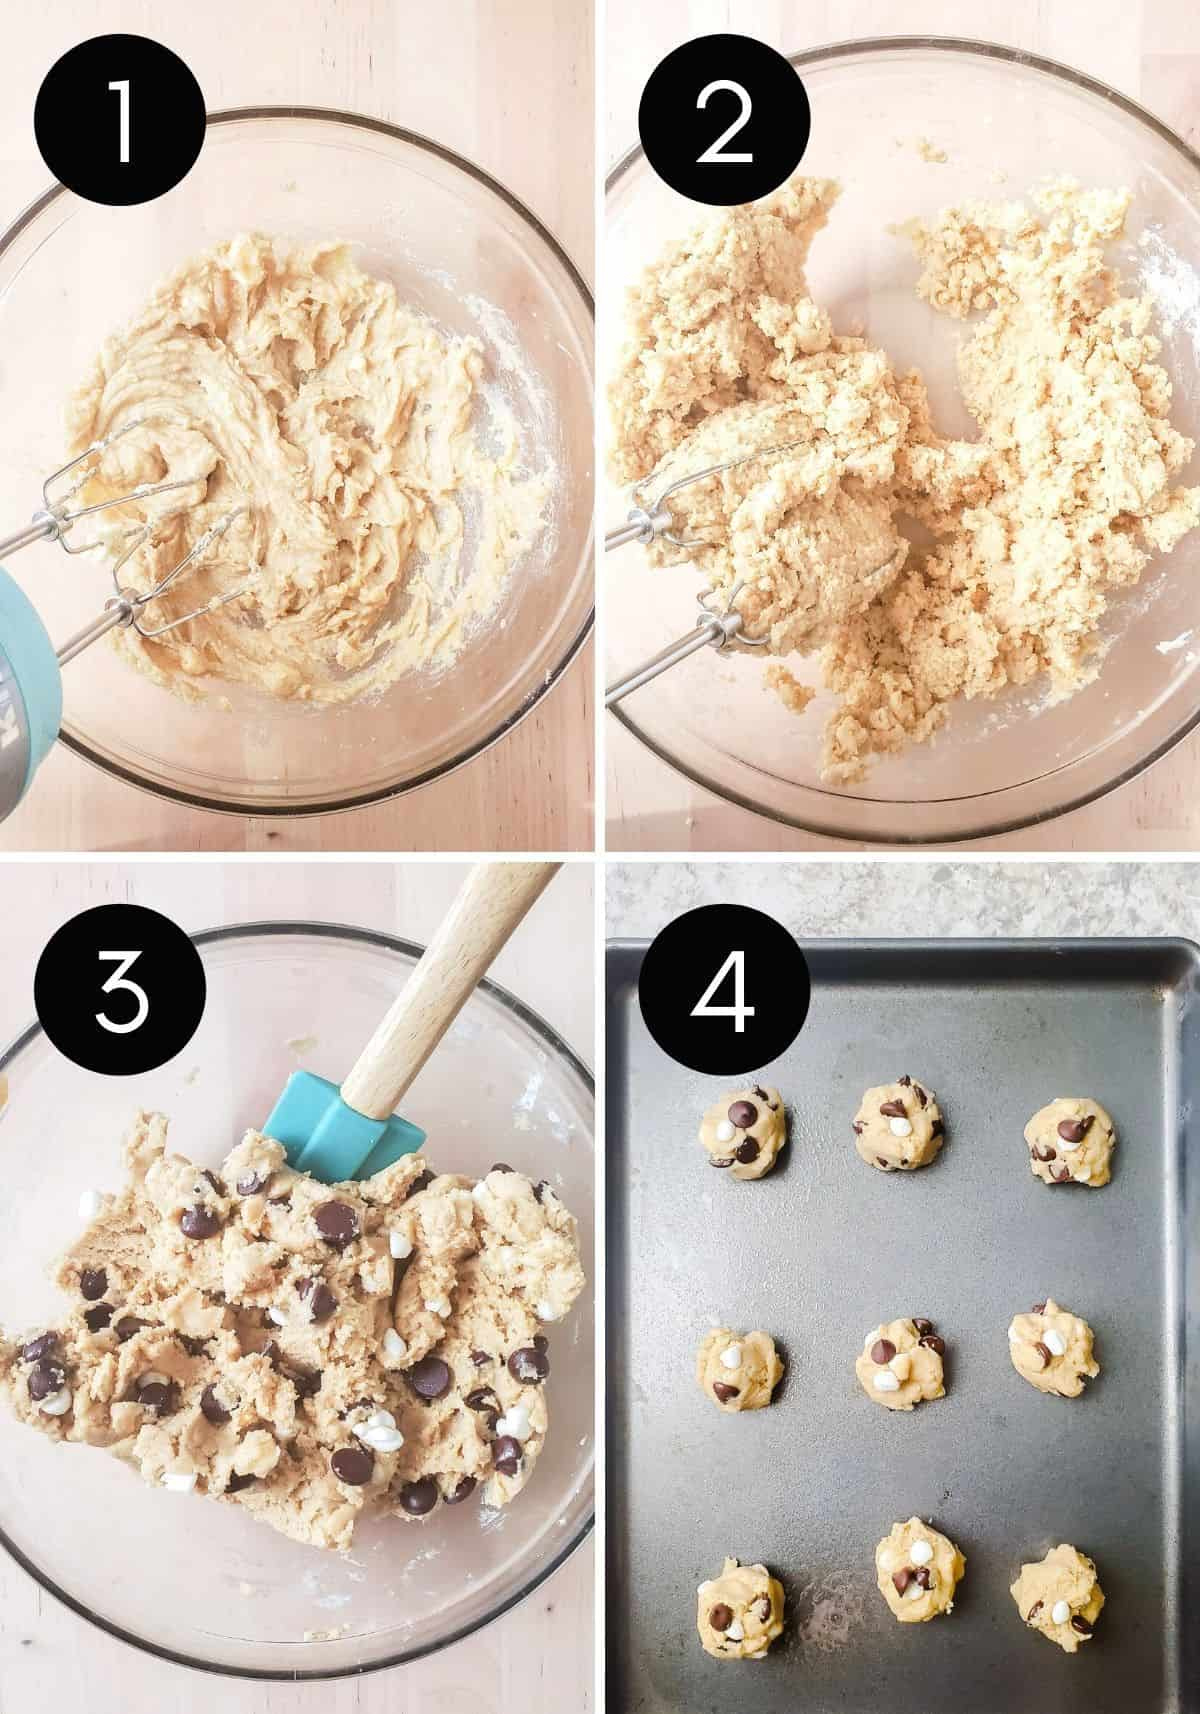 Four prep image collage showing cookie dough be made with number overlay.